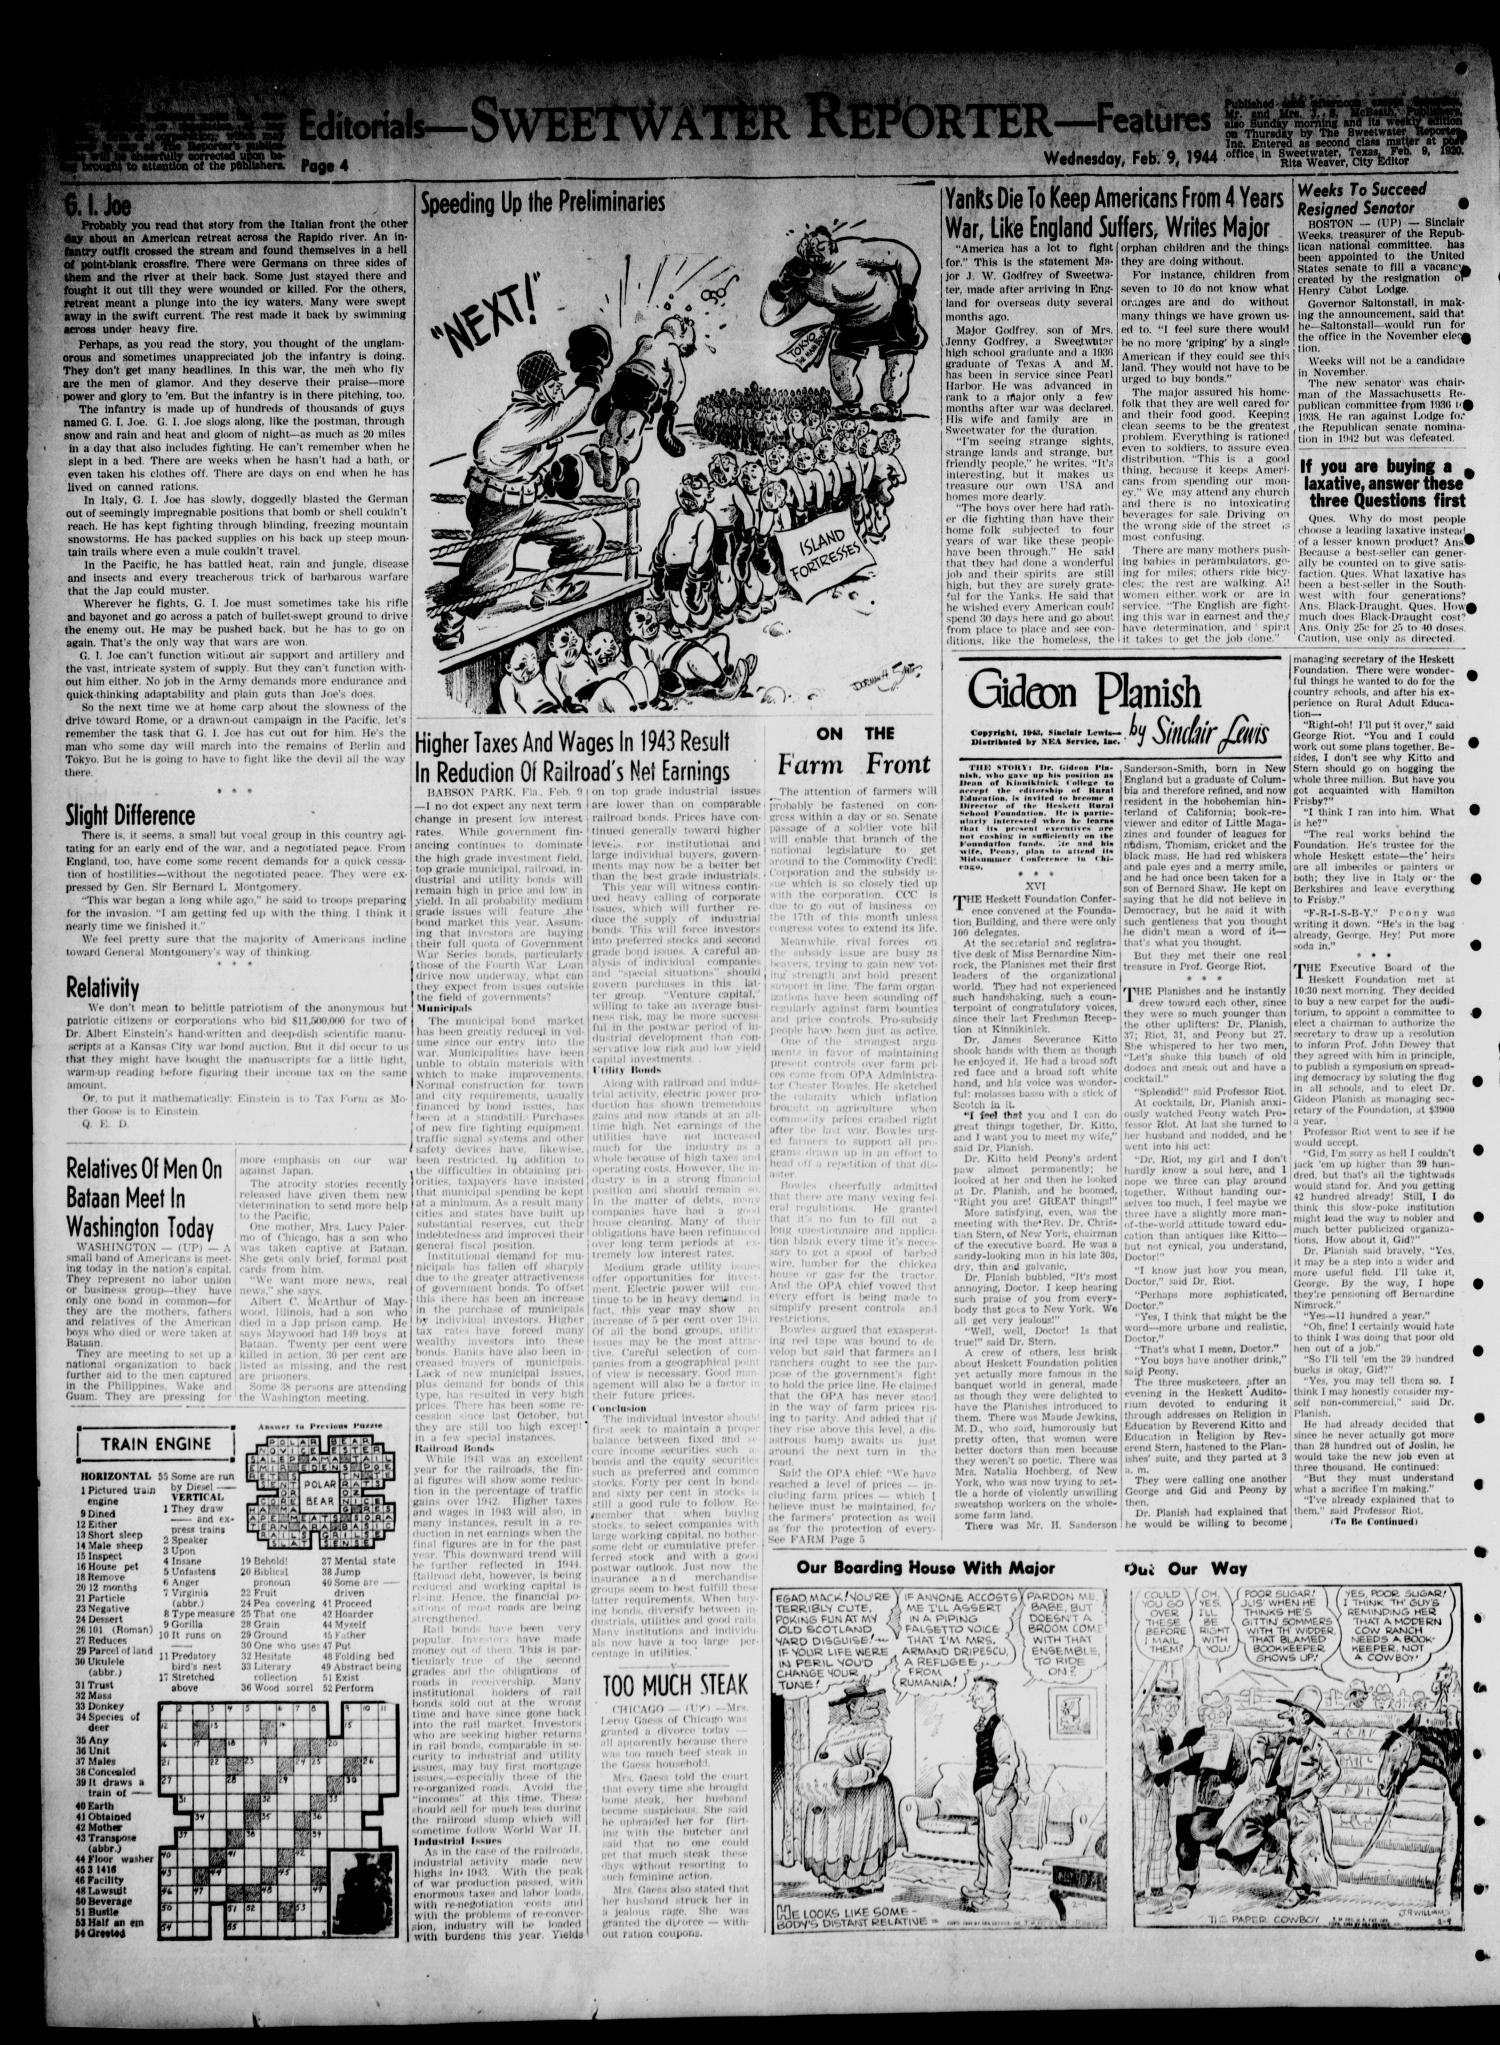 Sweetwater Reporter (Sweetwater, Tex.), Vol. 47, No. 34, Ed. 1 Wednesday, February 9, 1944                                                                                                      [Sequence #]: 4 of 6